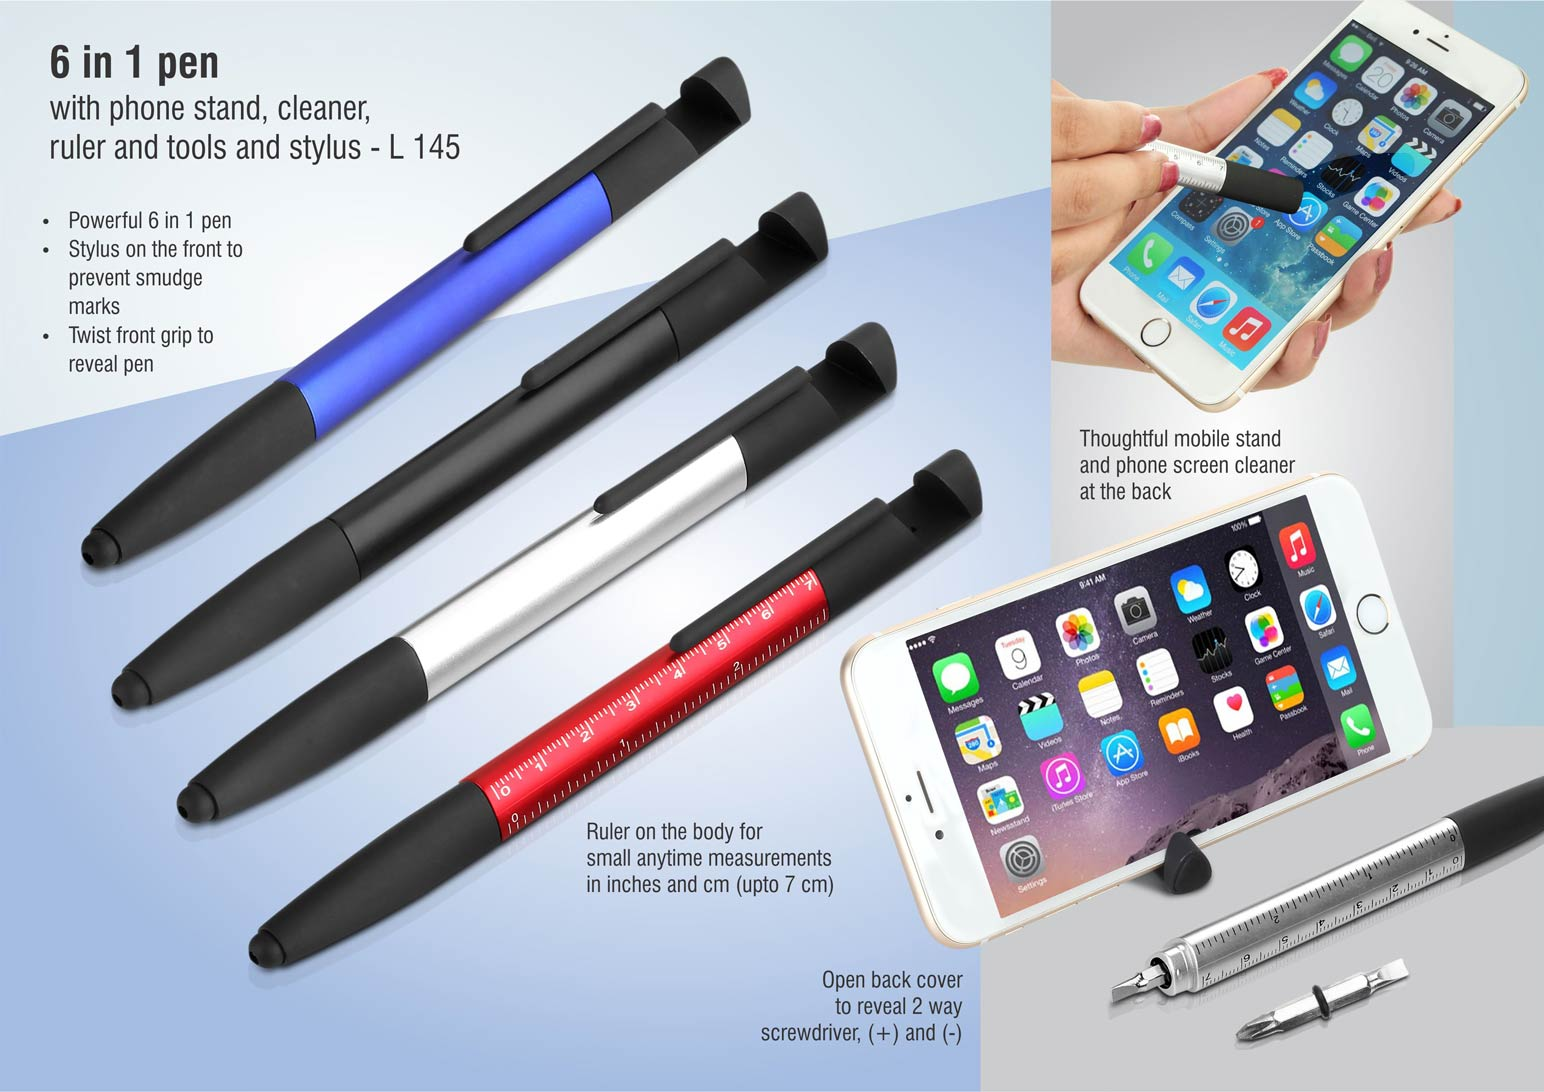 L145 - 6 in 1 pen with phone stand, cleaner, ruler and tools and stylus